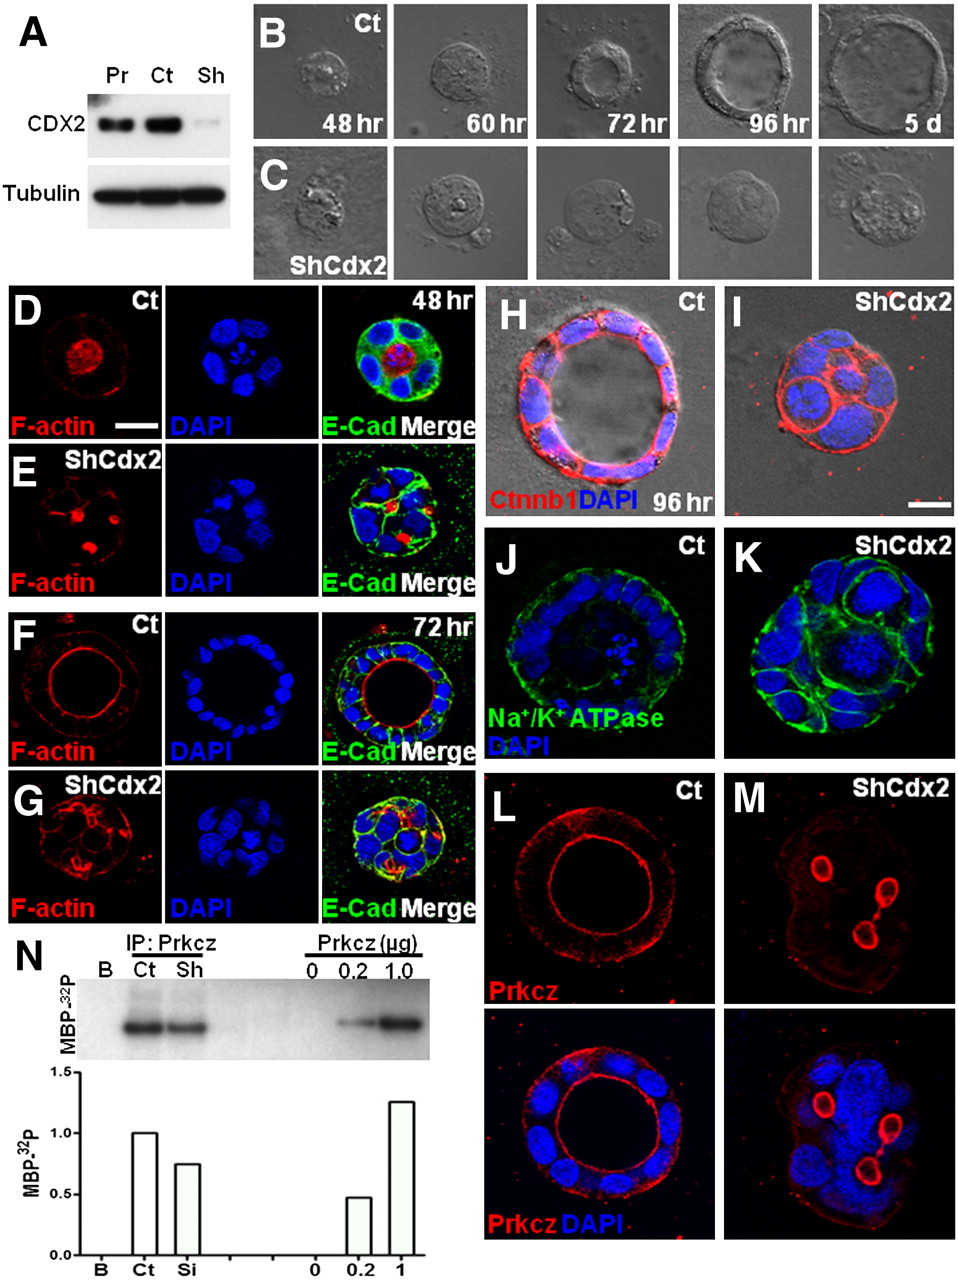 Cdx2 regulates endo-lysosomal function and epithelial cell